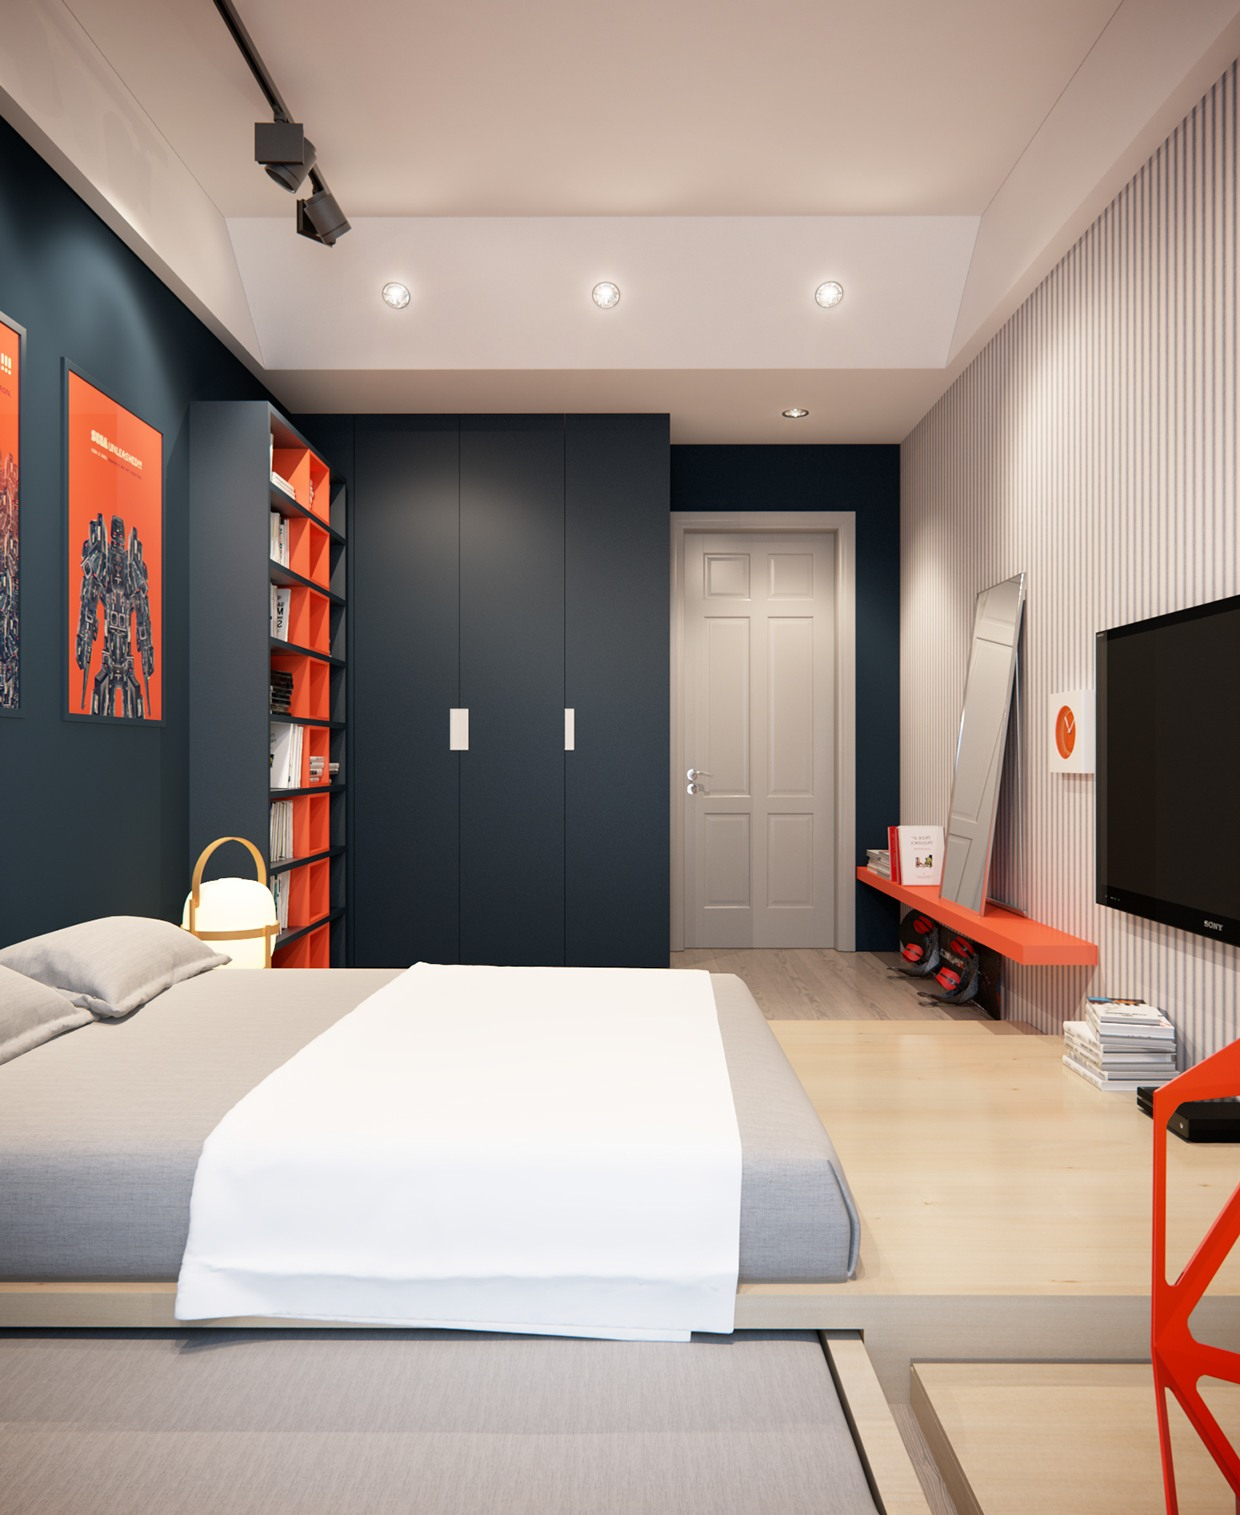 Boys bedroom design interior design ideas for Bedroom ideas boys